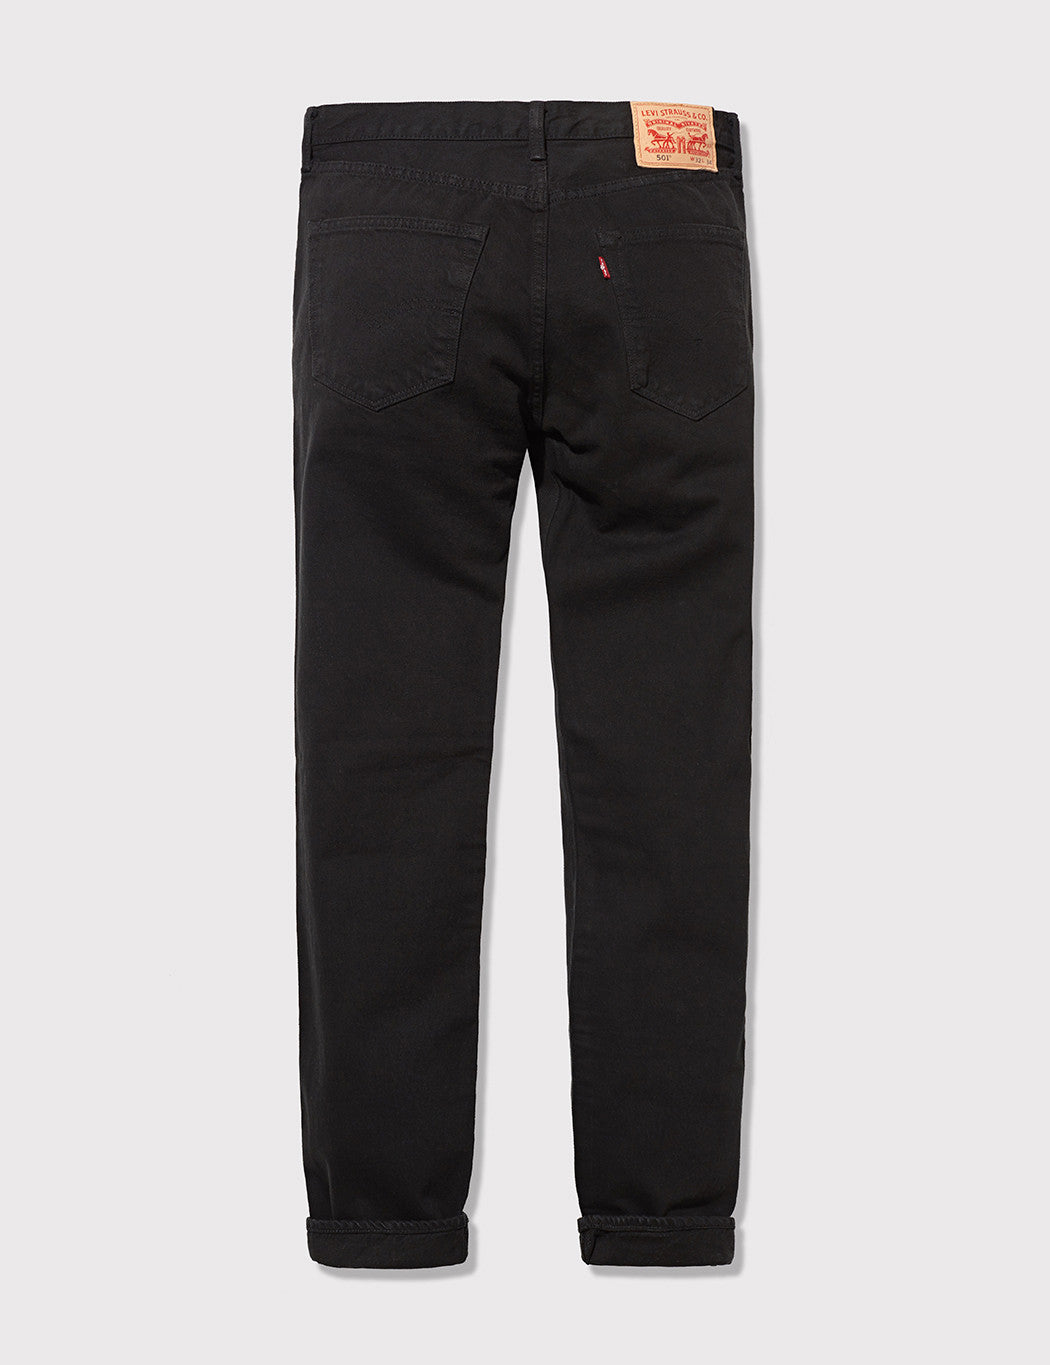 f33593529ec Levis 501 Jeans (Regular) - Black